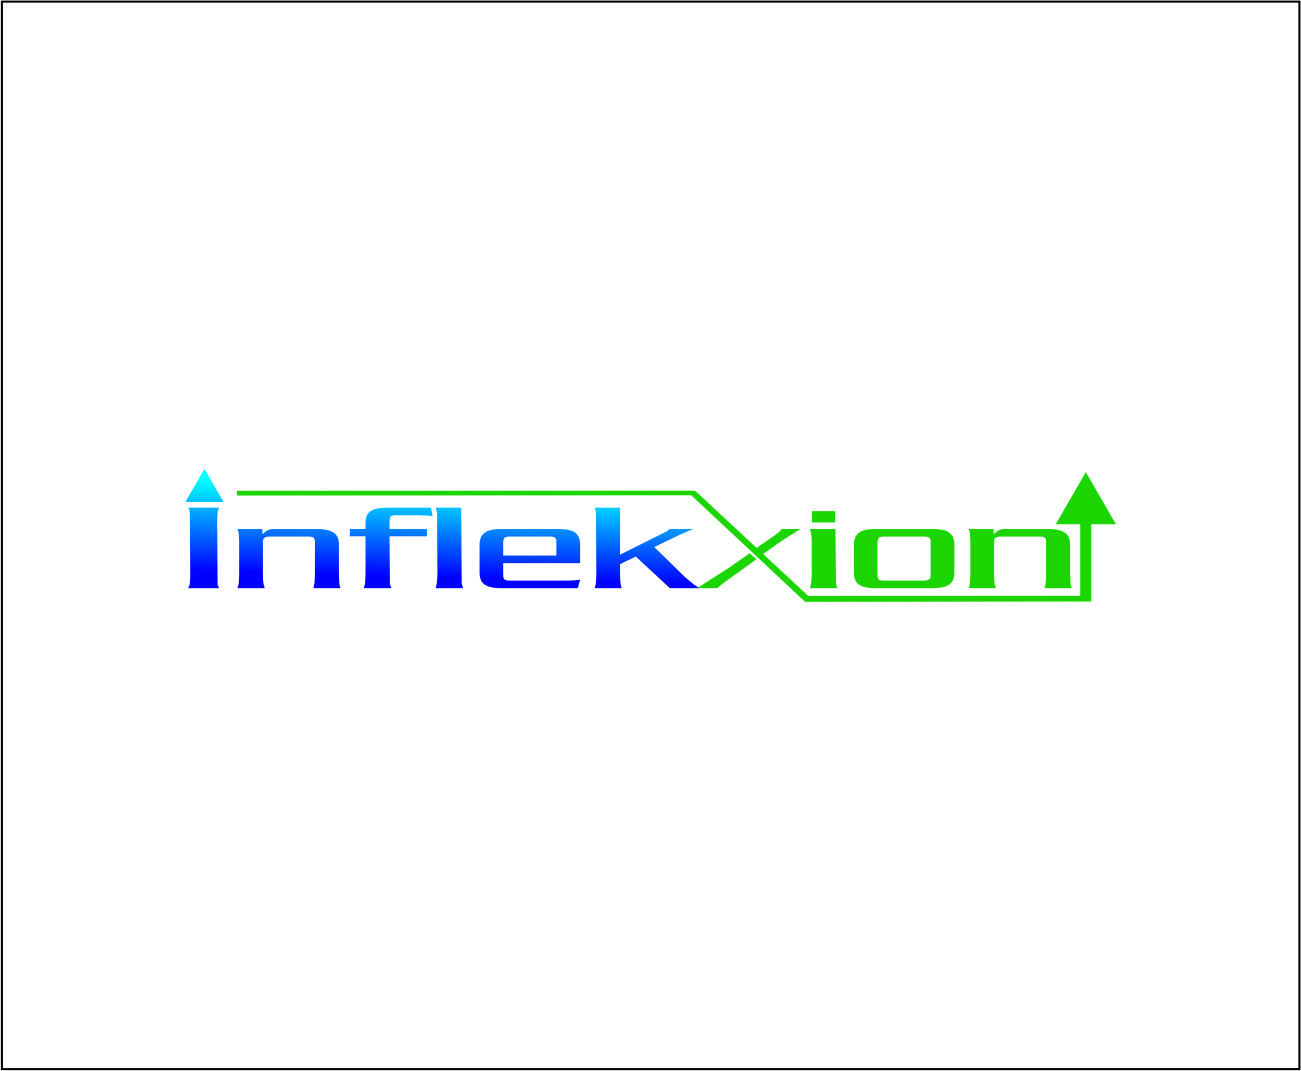 Logo Design by Agus Martoyo - Entry No. 41 in the Logo Design Contest Professional Logo Design for Inflekxion.